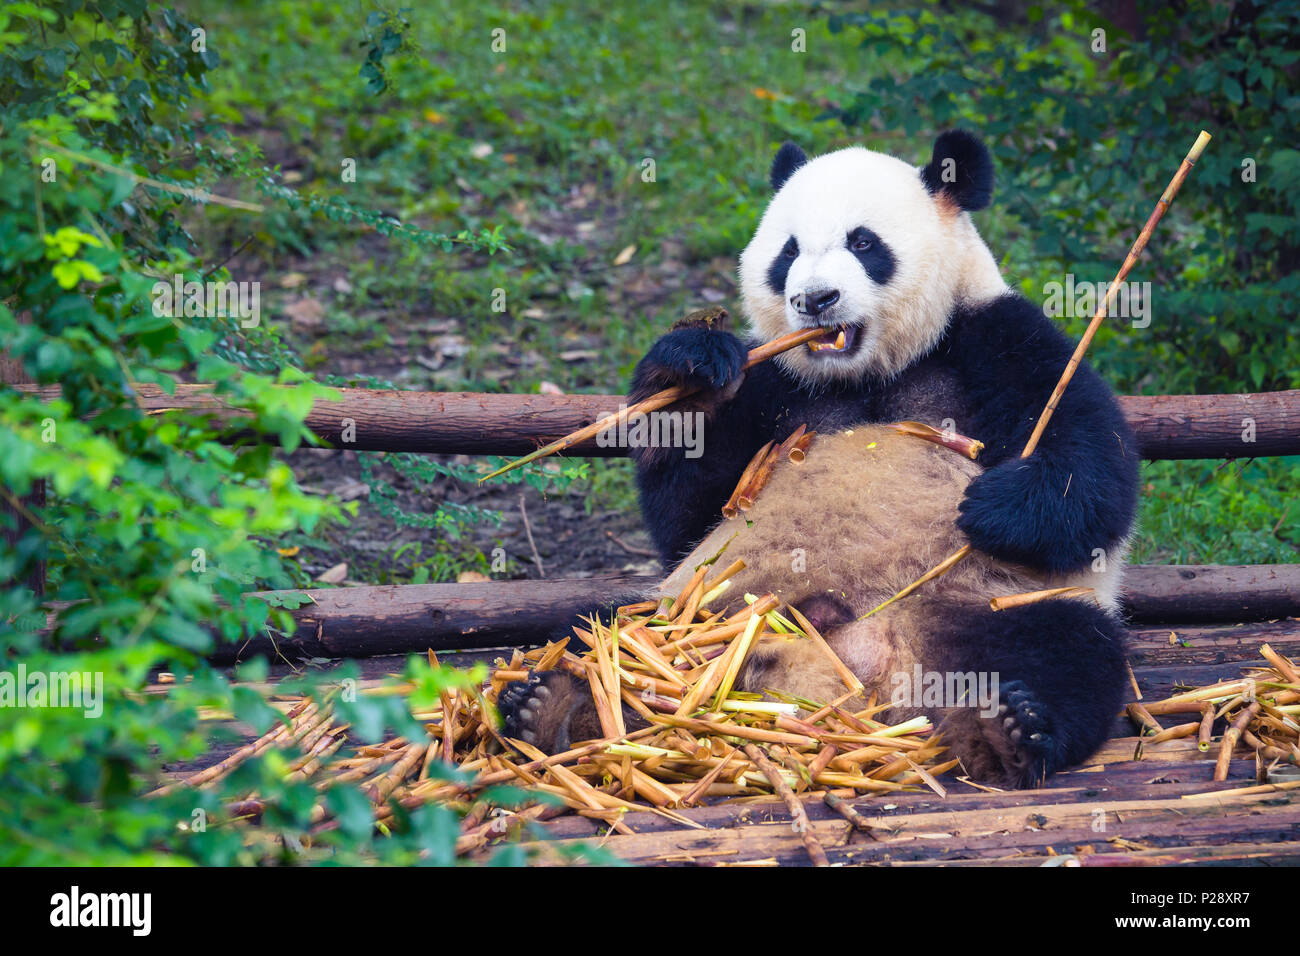 Giant Panda eating bamboo lying down on wood in Chengdu, Sichuan Province, China - Stock Image